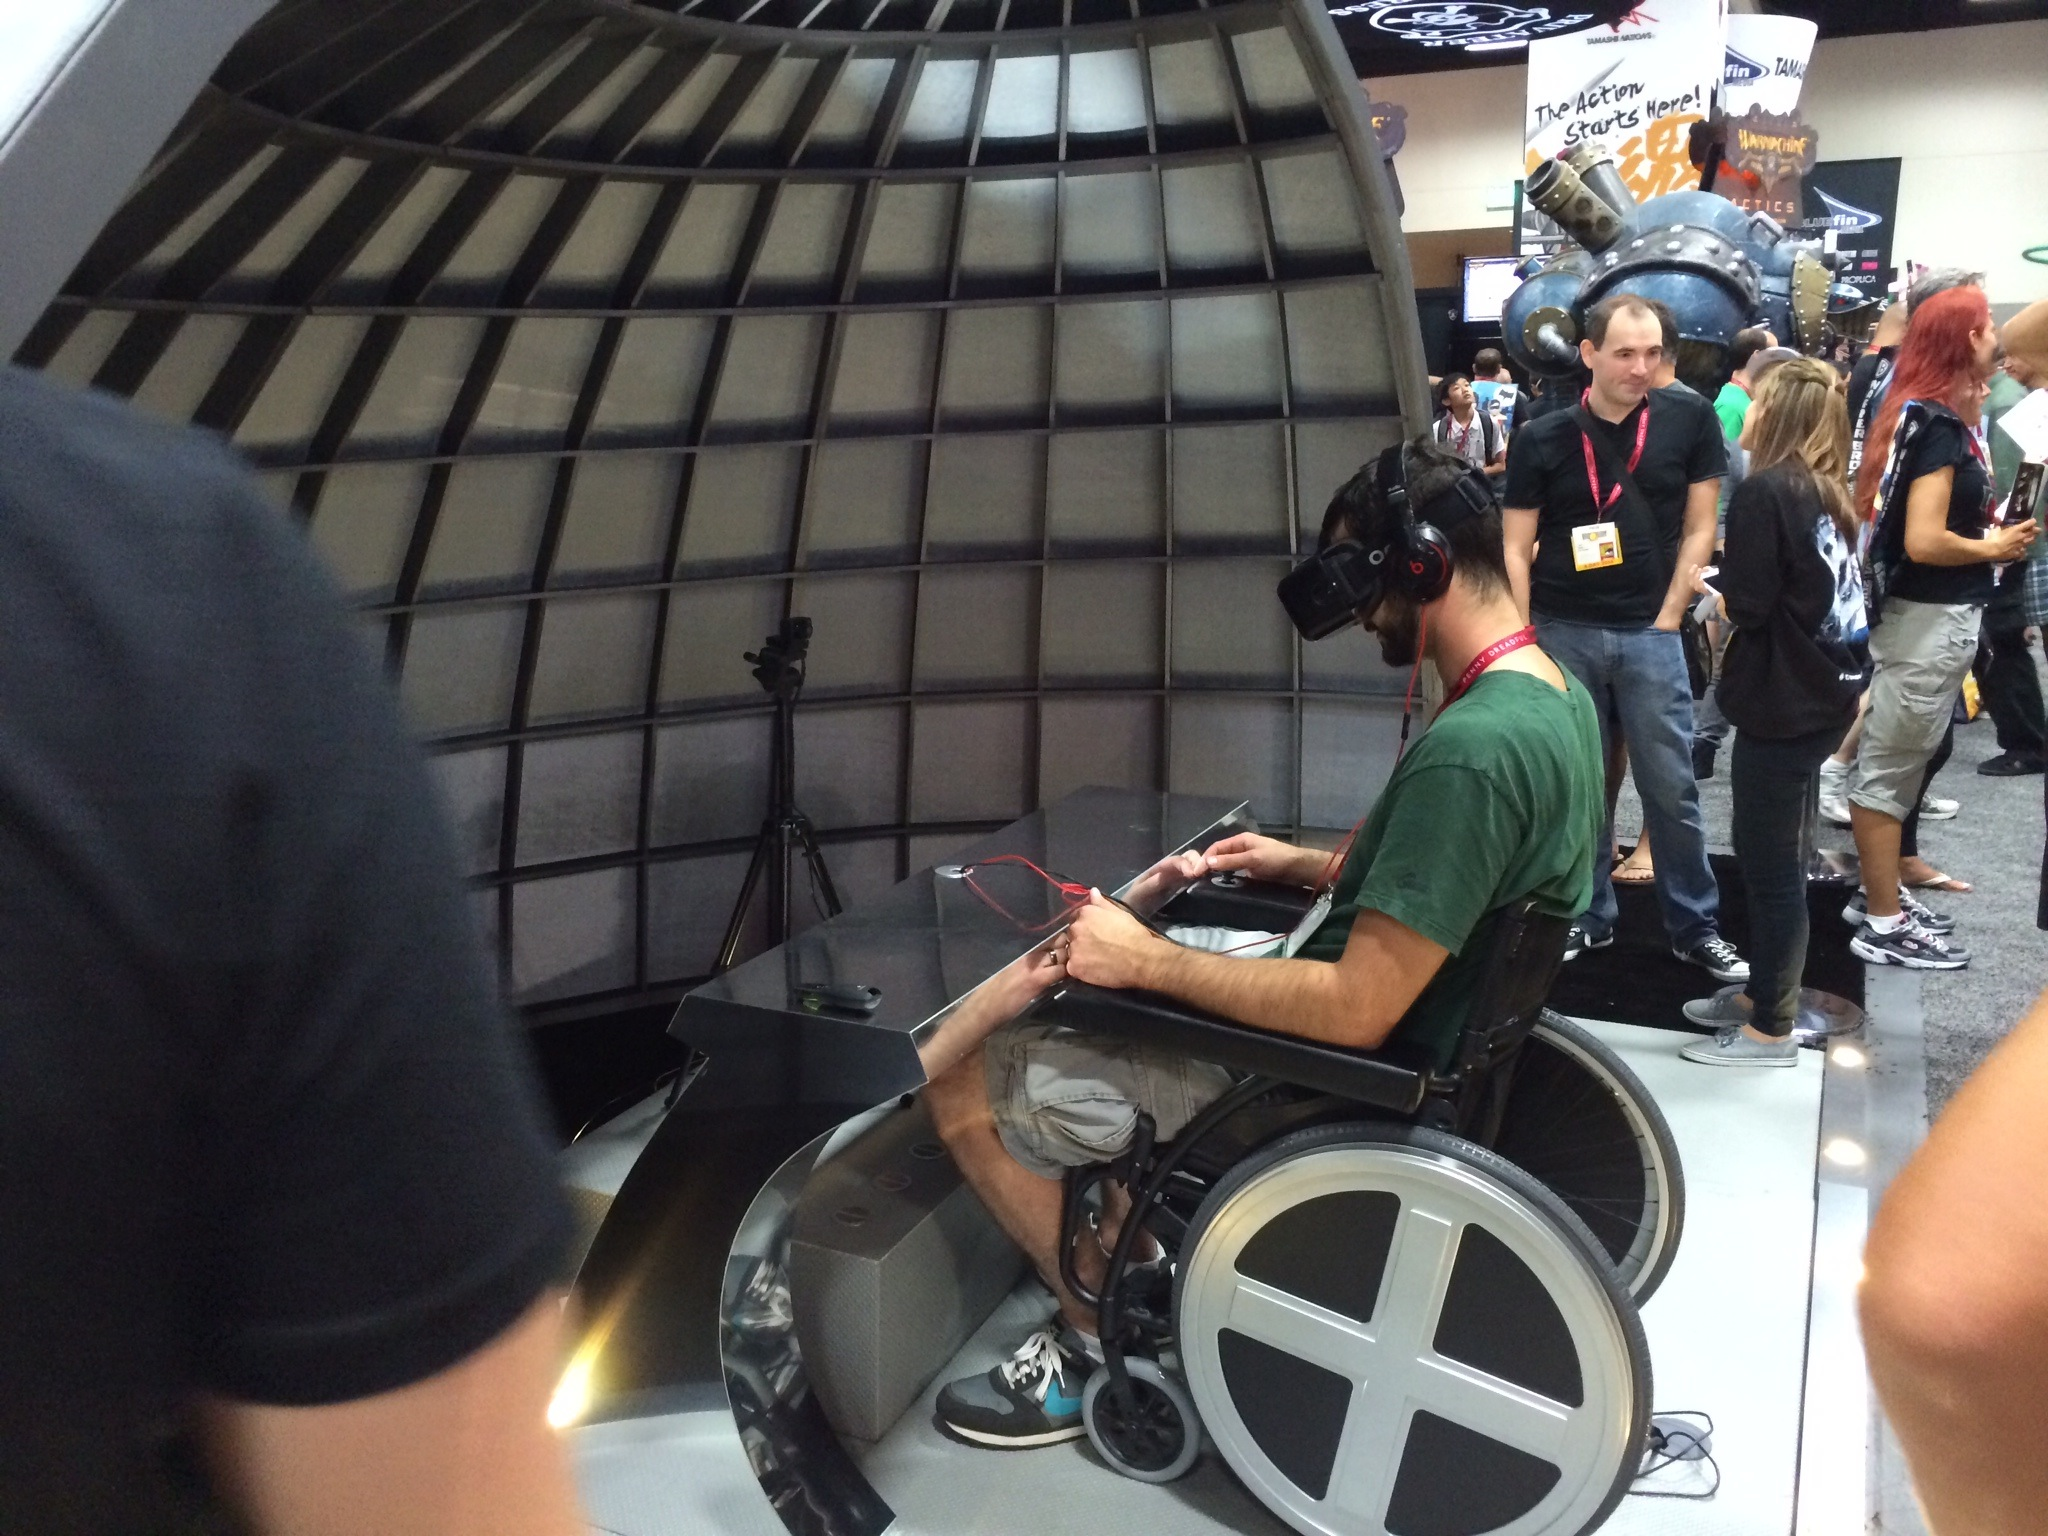 How Oculus Rift and Themed Experiences Are Shaking Up Comic-Con